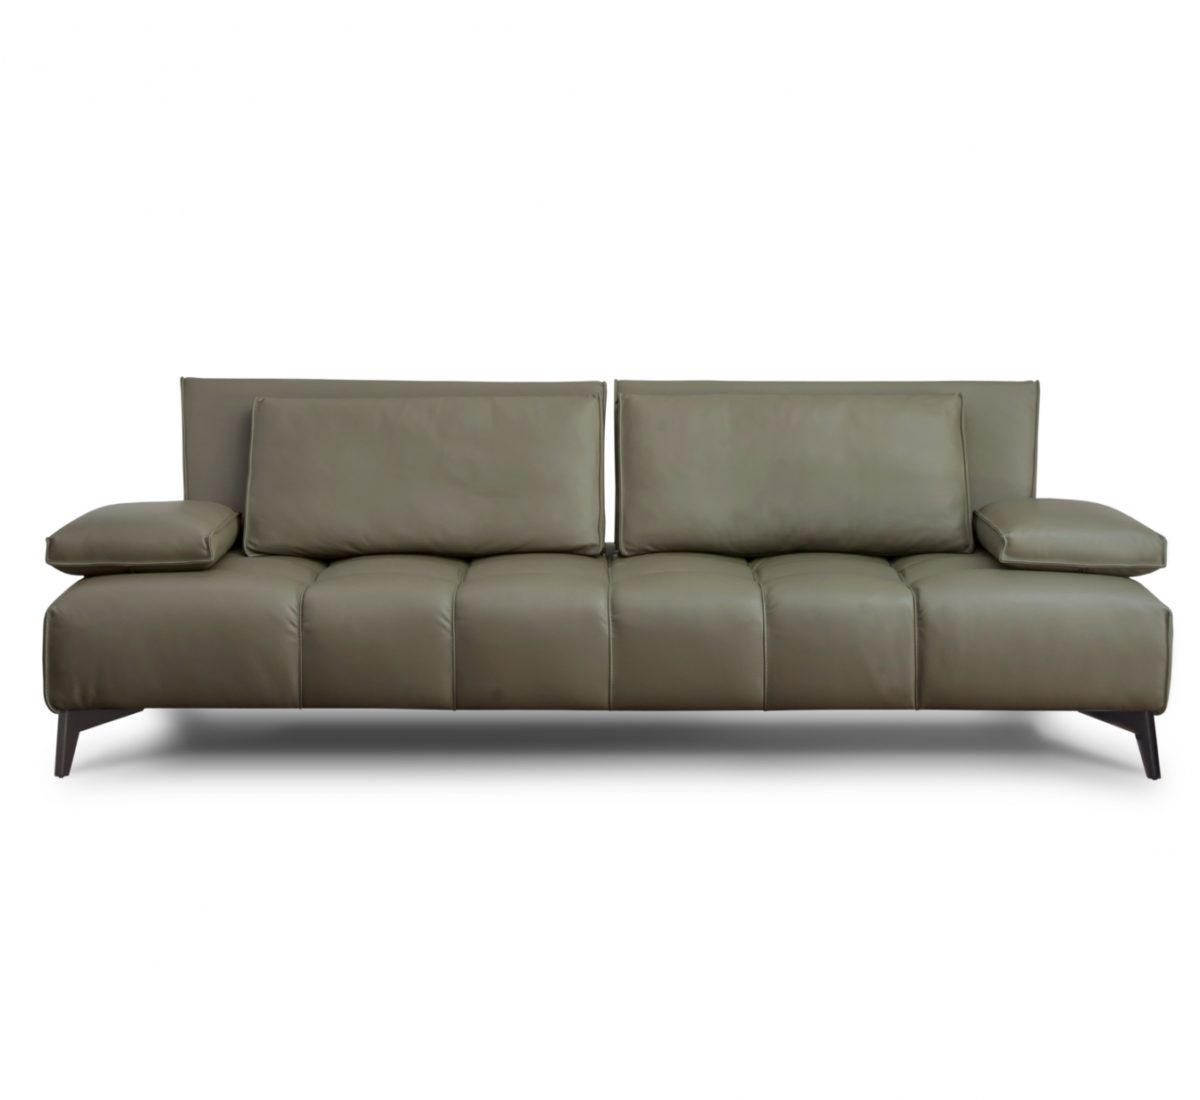 Rosemary sofa | Calia Italia